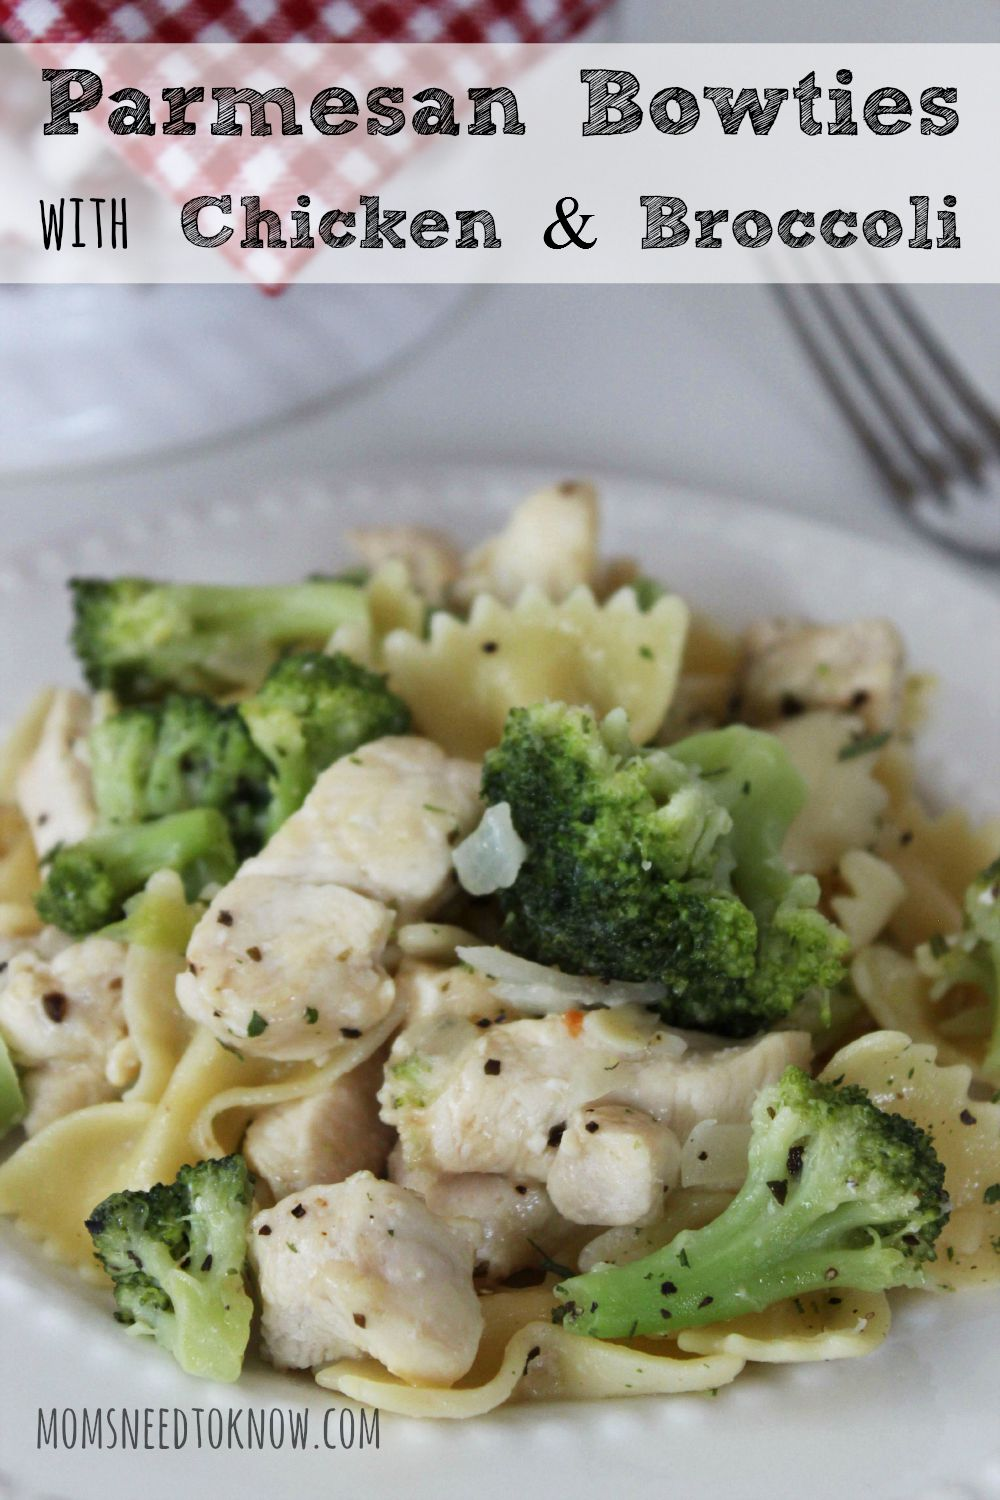 Parmesan Bowties with Chicken and Broccoli